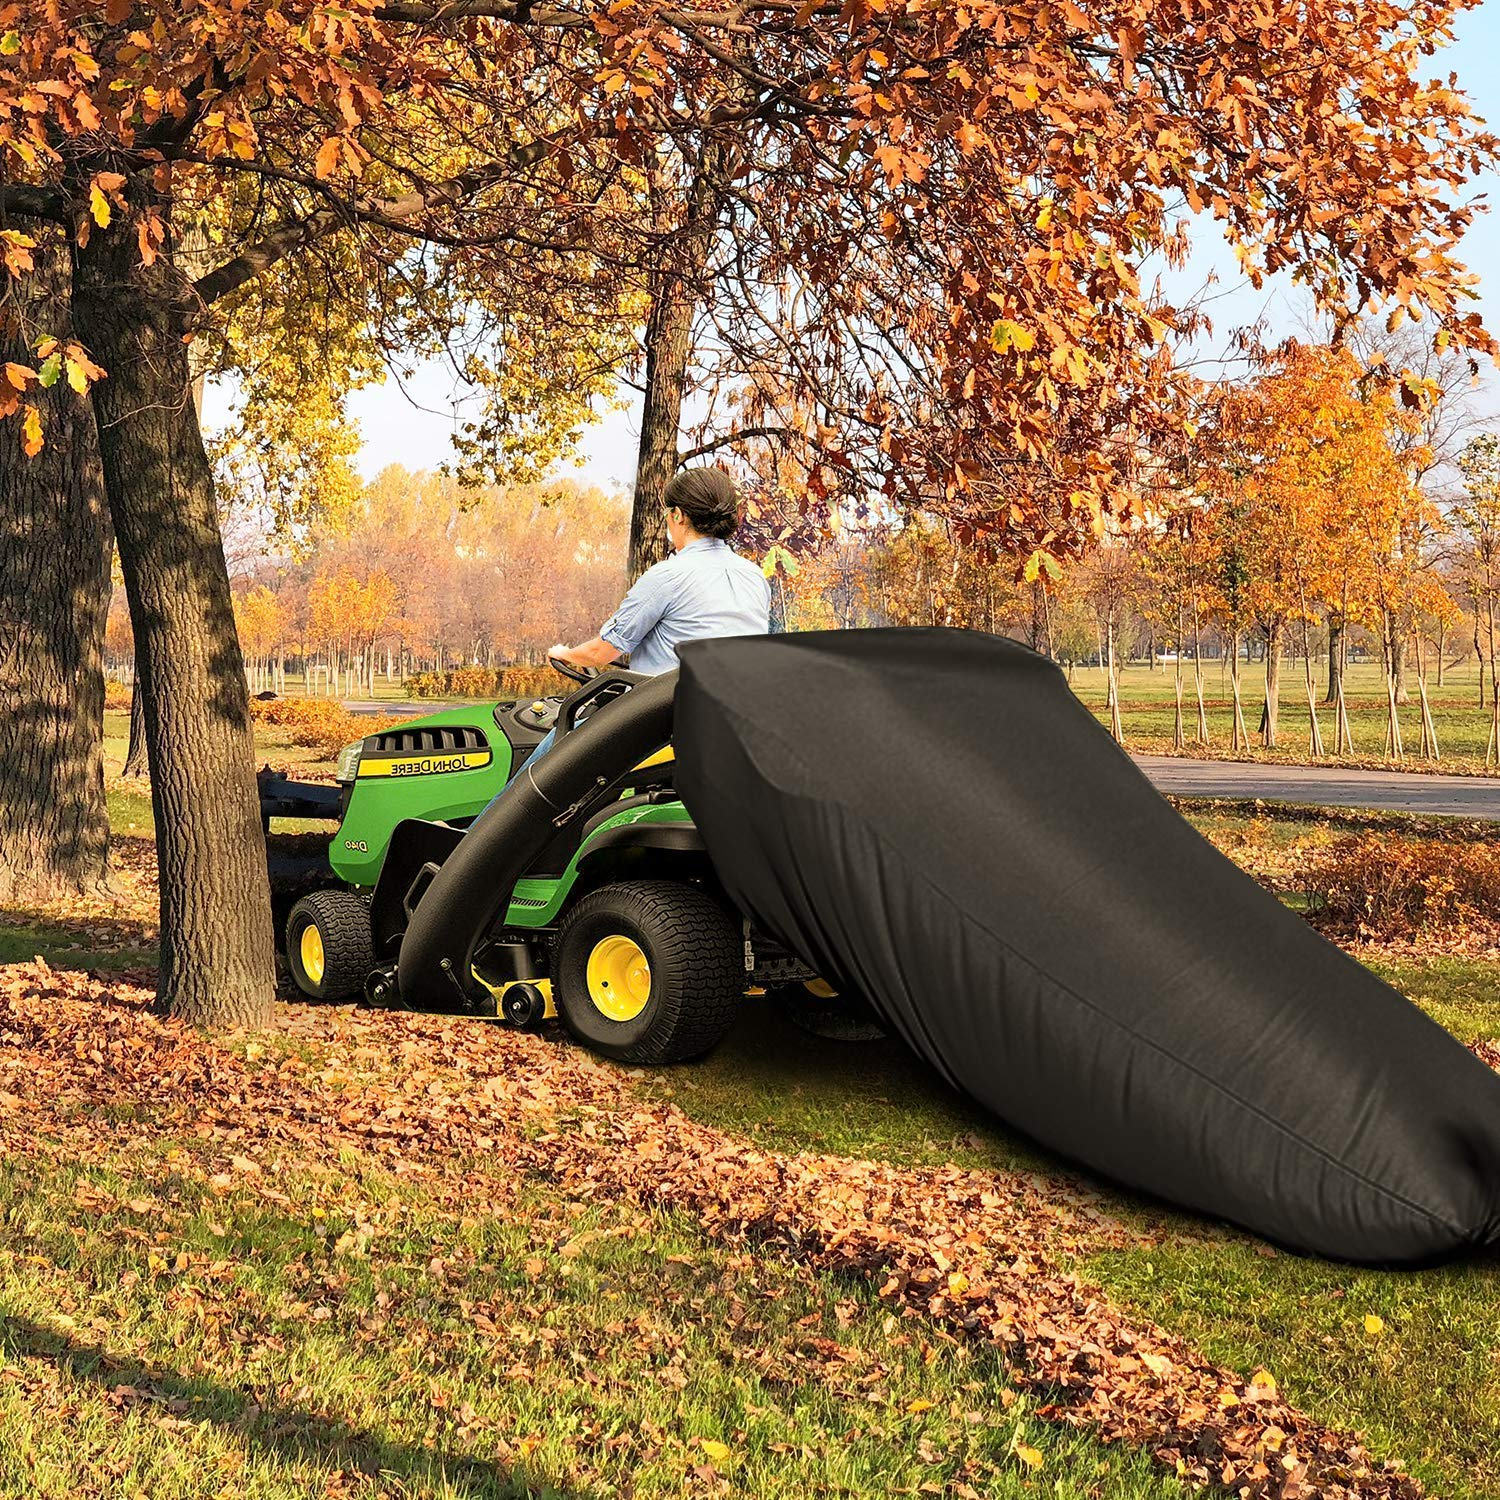 Lifesmells Lawn Tractor Leaf Bag,Lawn Sweeper Tow Behind,Reusable Collecting Leaves Waste Bag,Mower Leaf Bag,Fit for Cub Cadet XT1 LT42, XT1 LT46, XT2 LX42, XT2 LX46,54 Cubic Feet Black